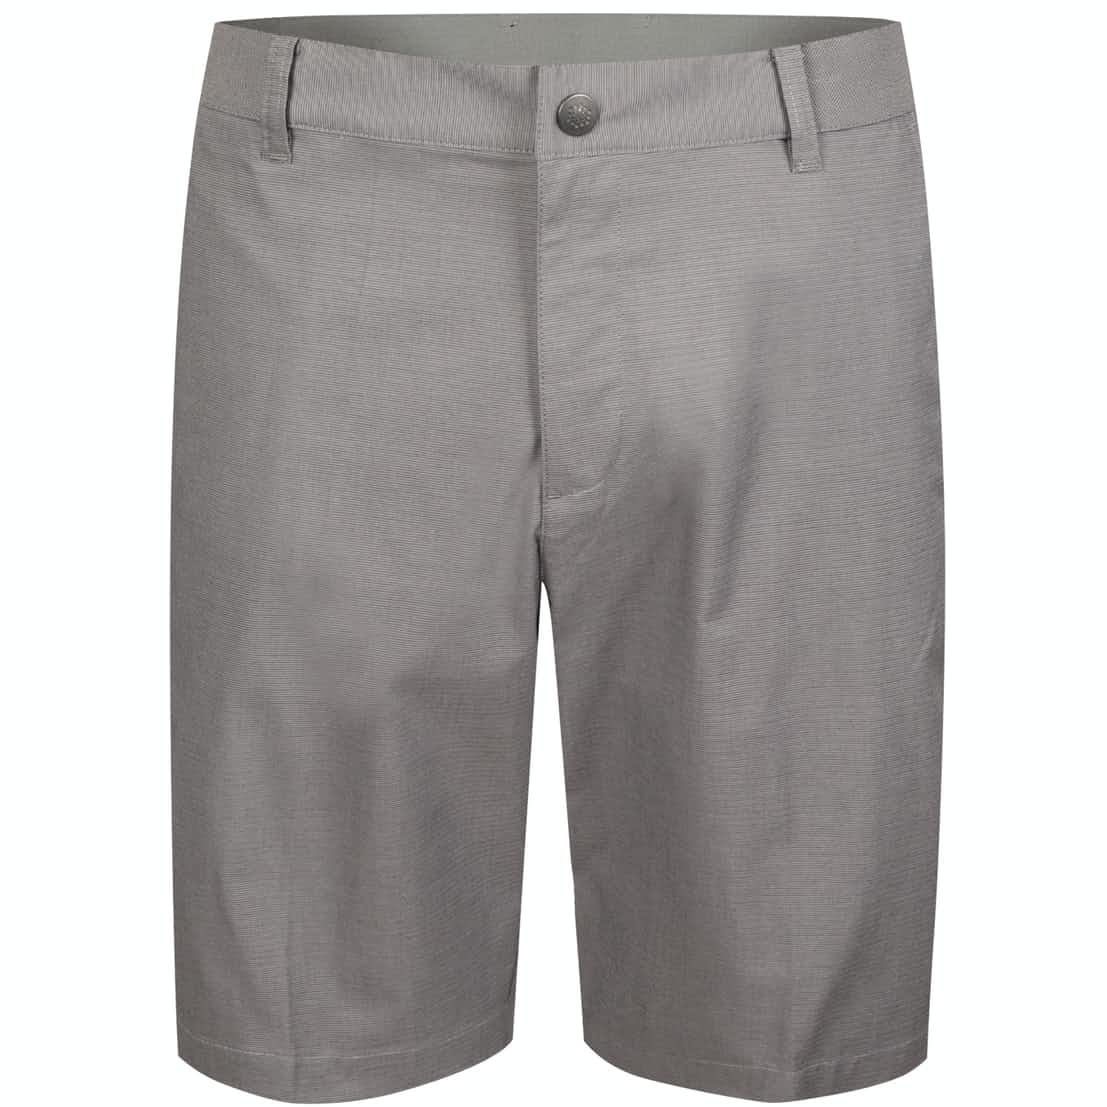 Riviera Shorts Quiet Shade - AW19